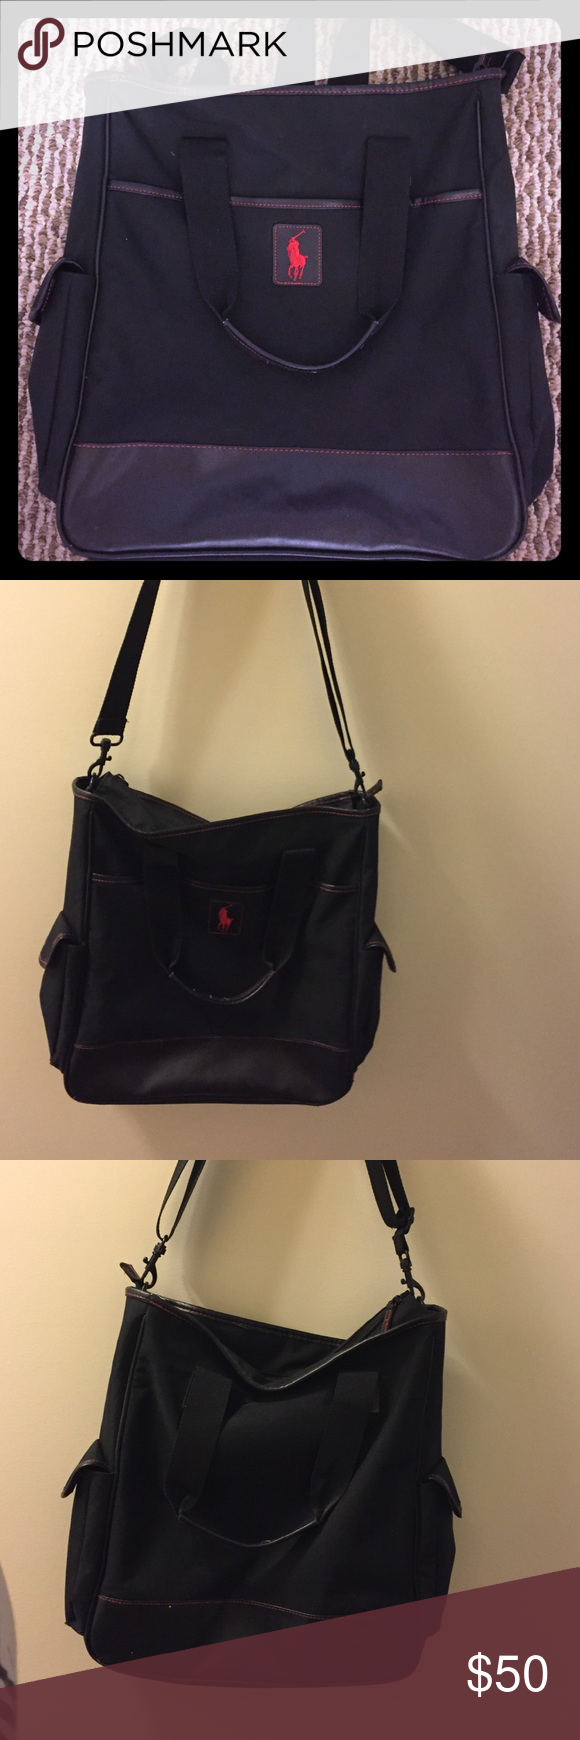 Polo Ralph Lauren laptop bag Great condition! Can be used as a laptop carrying case or just an everyday bag. Perfect for men or women! Adjustable shoulder strap, can be worn as cross body or on shoulder. Also can be carried with additional handles Polo by Ralph Lauren Bags Laptop Bags